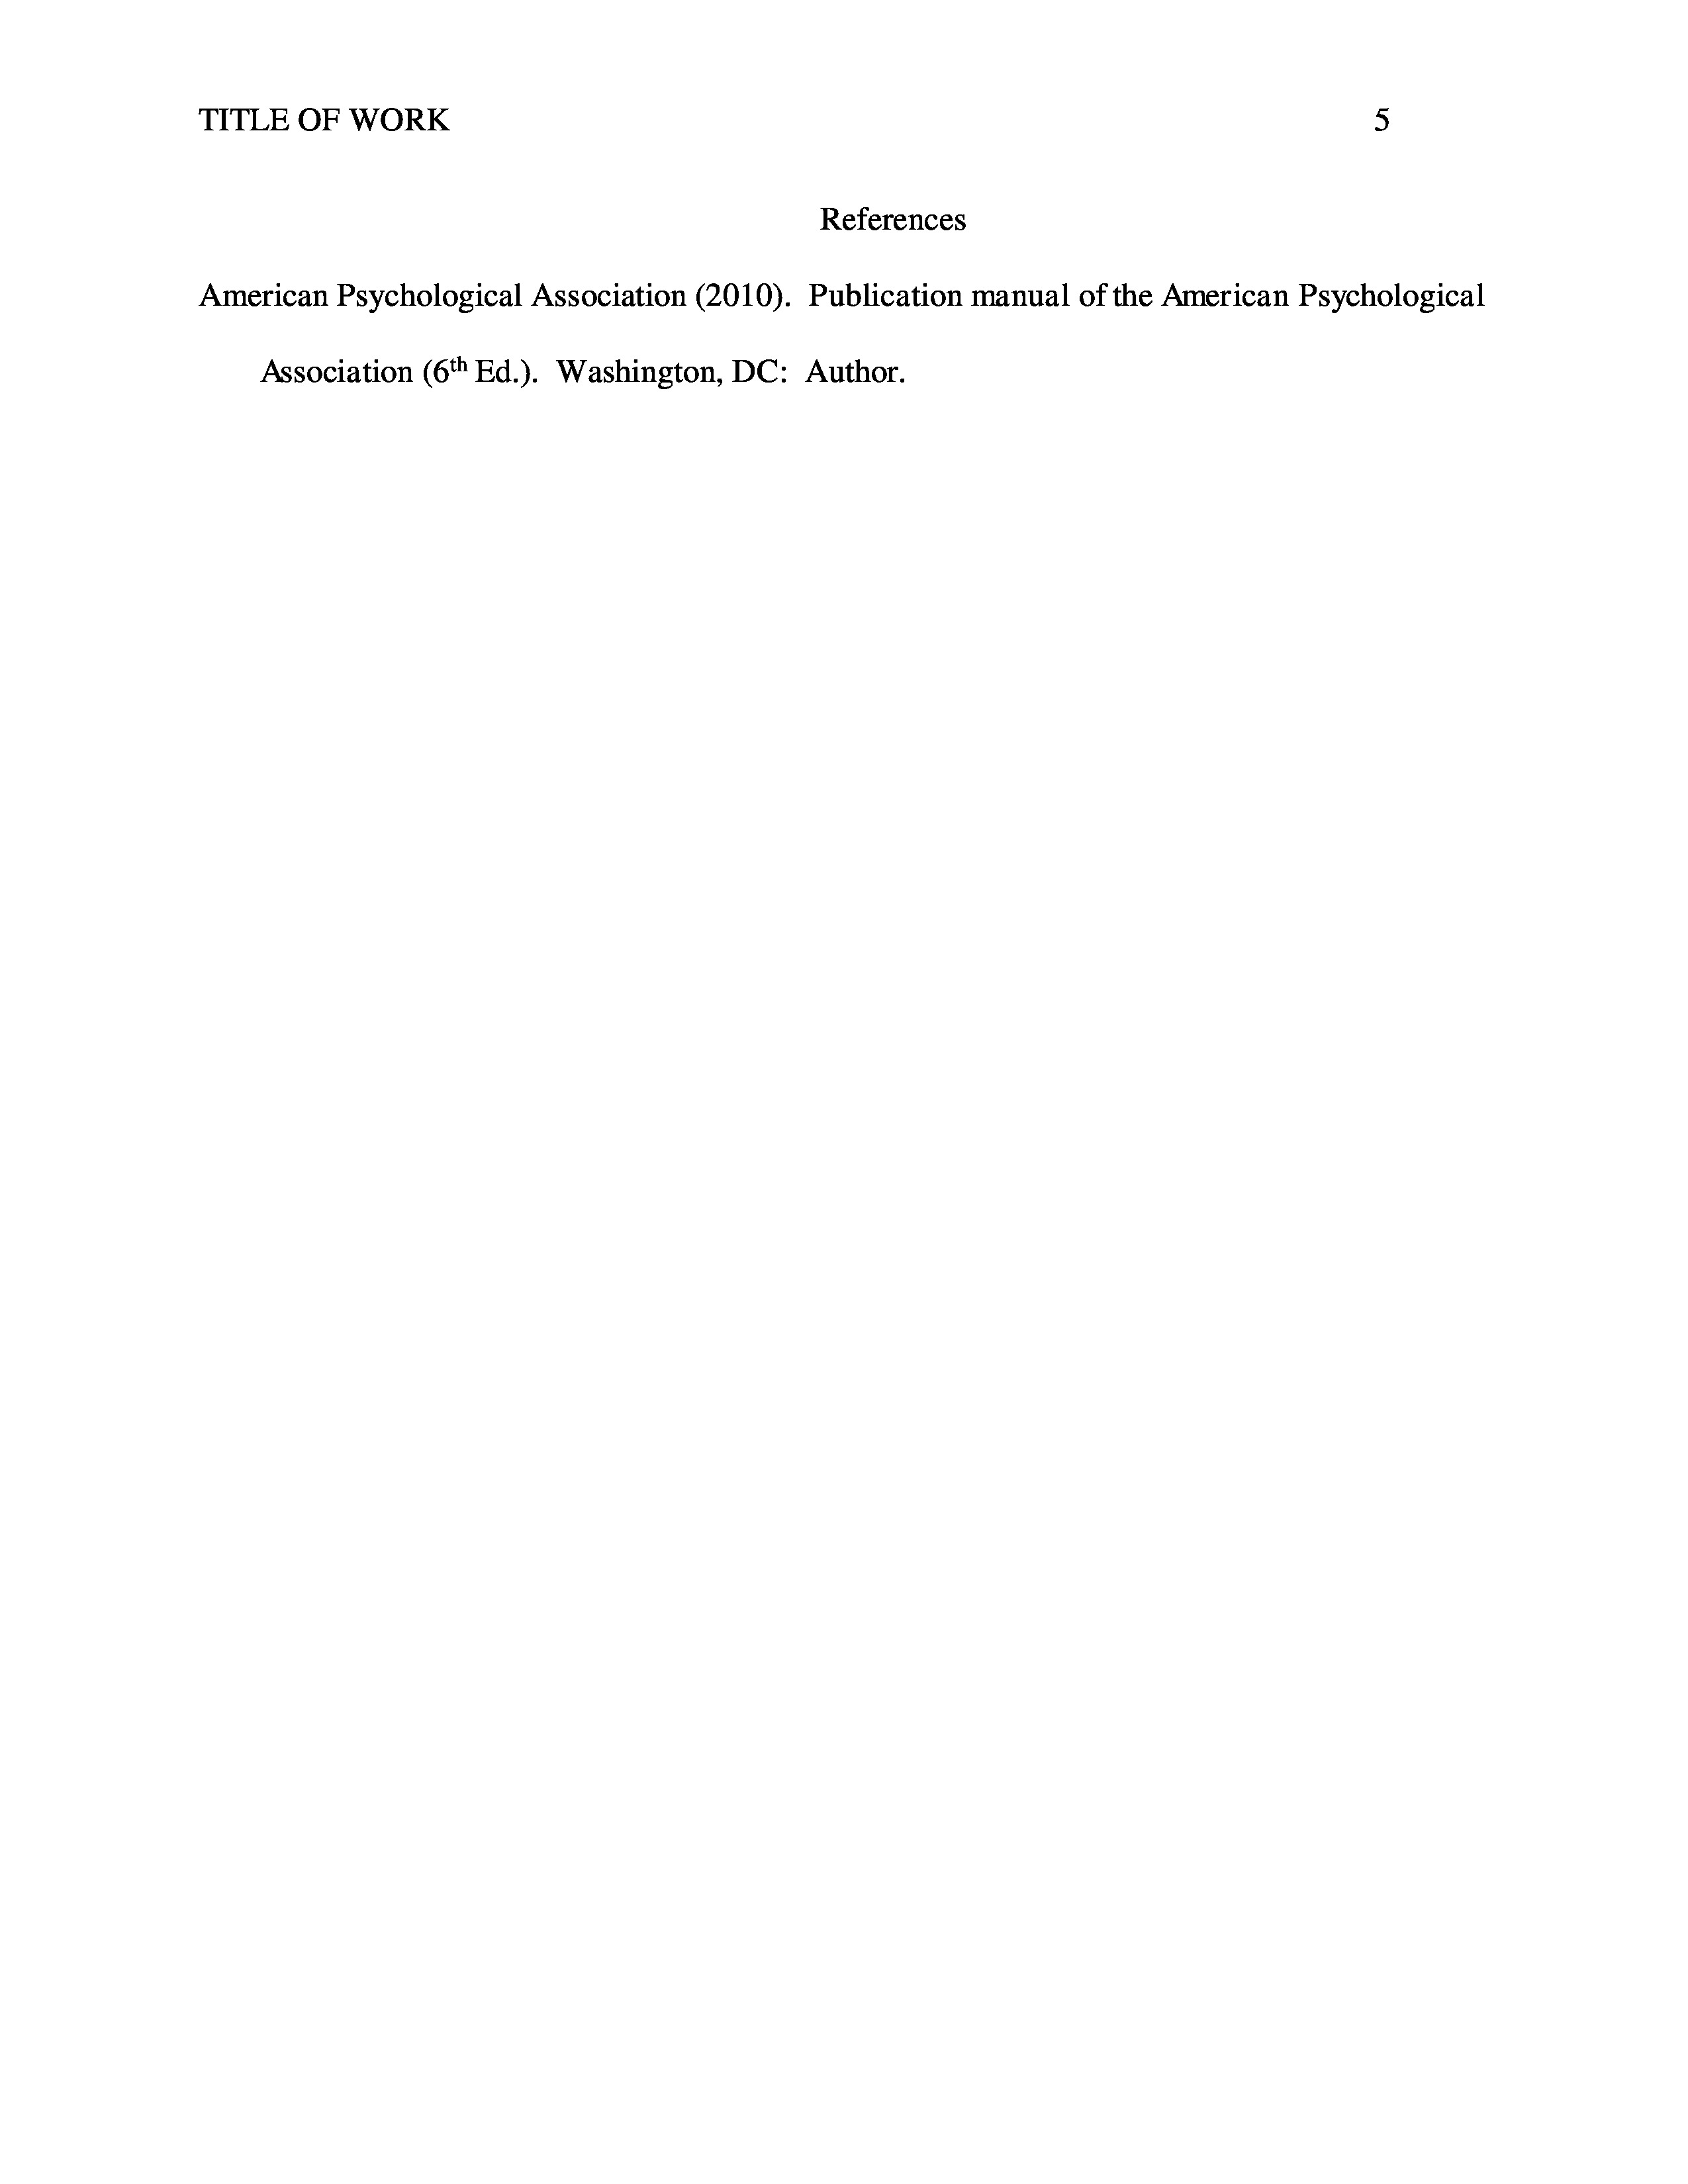 example of a scholarly paper in apa format